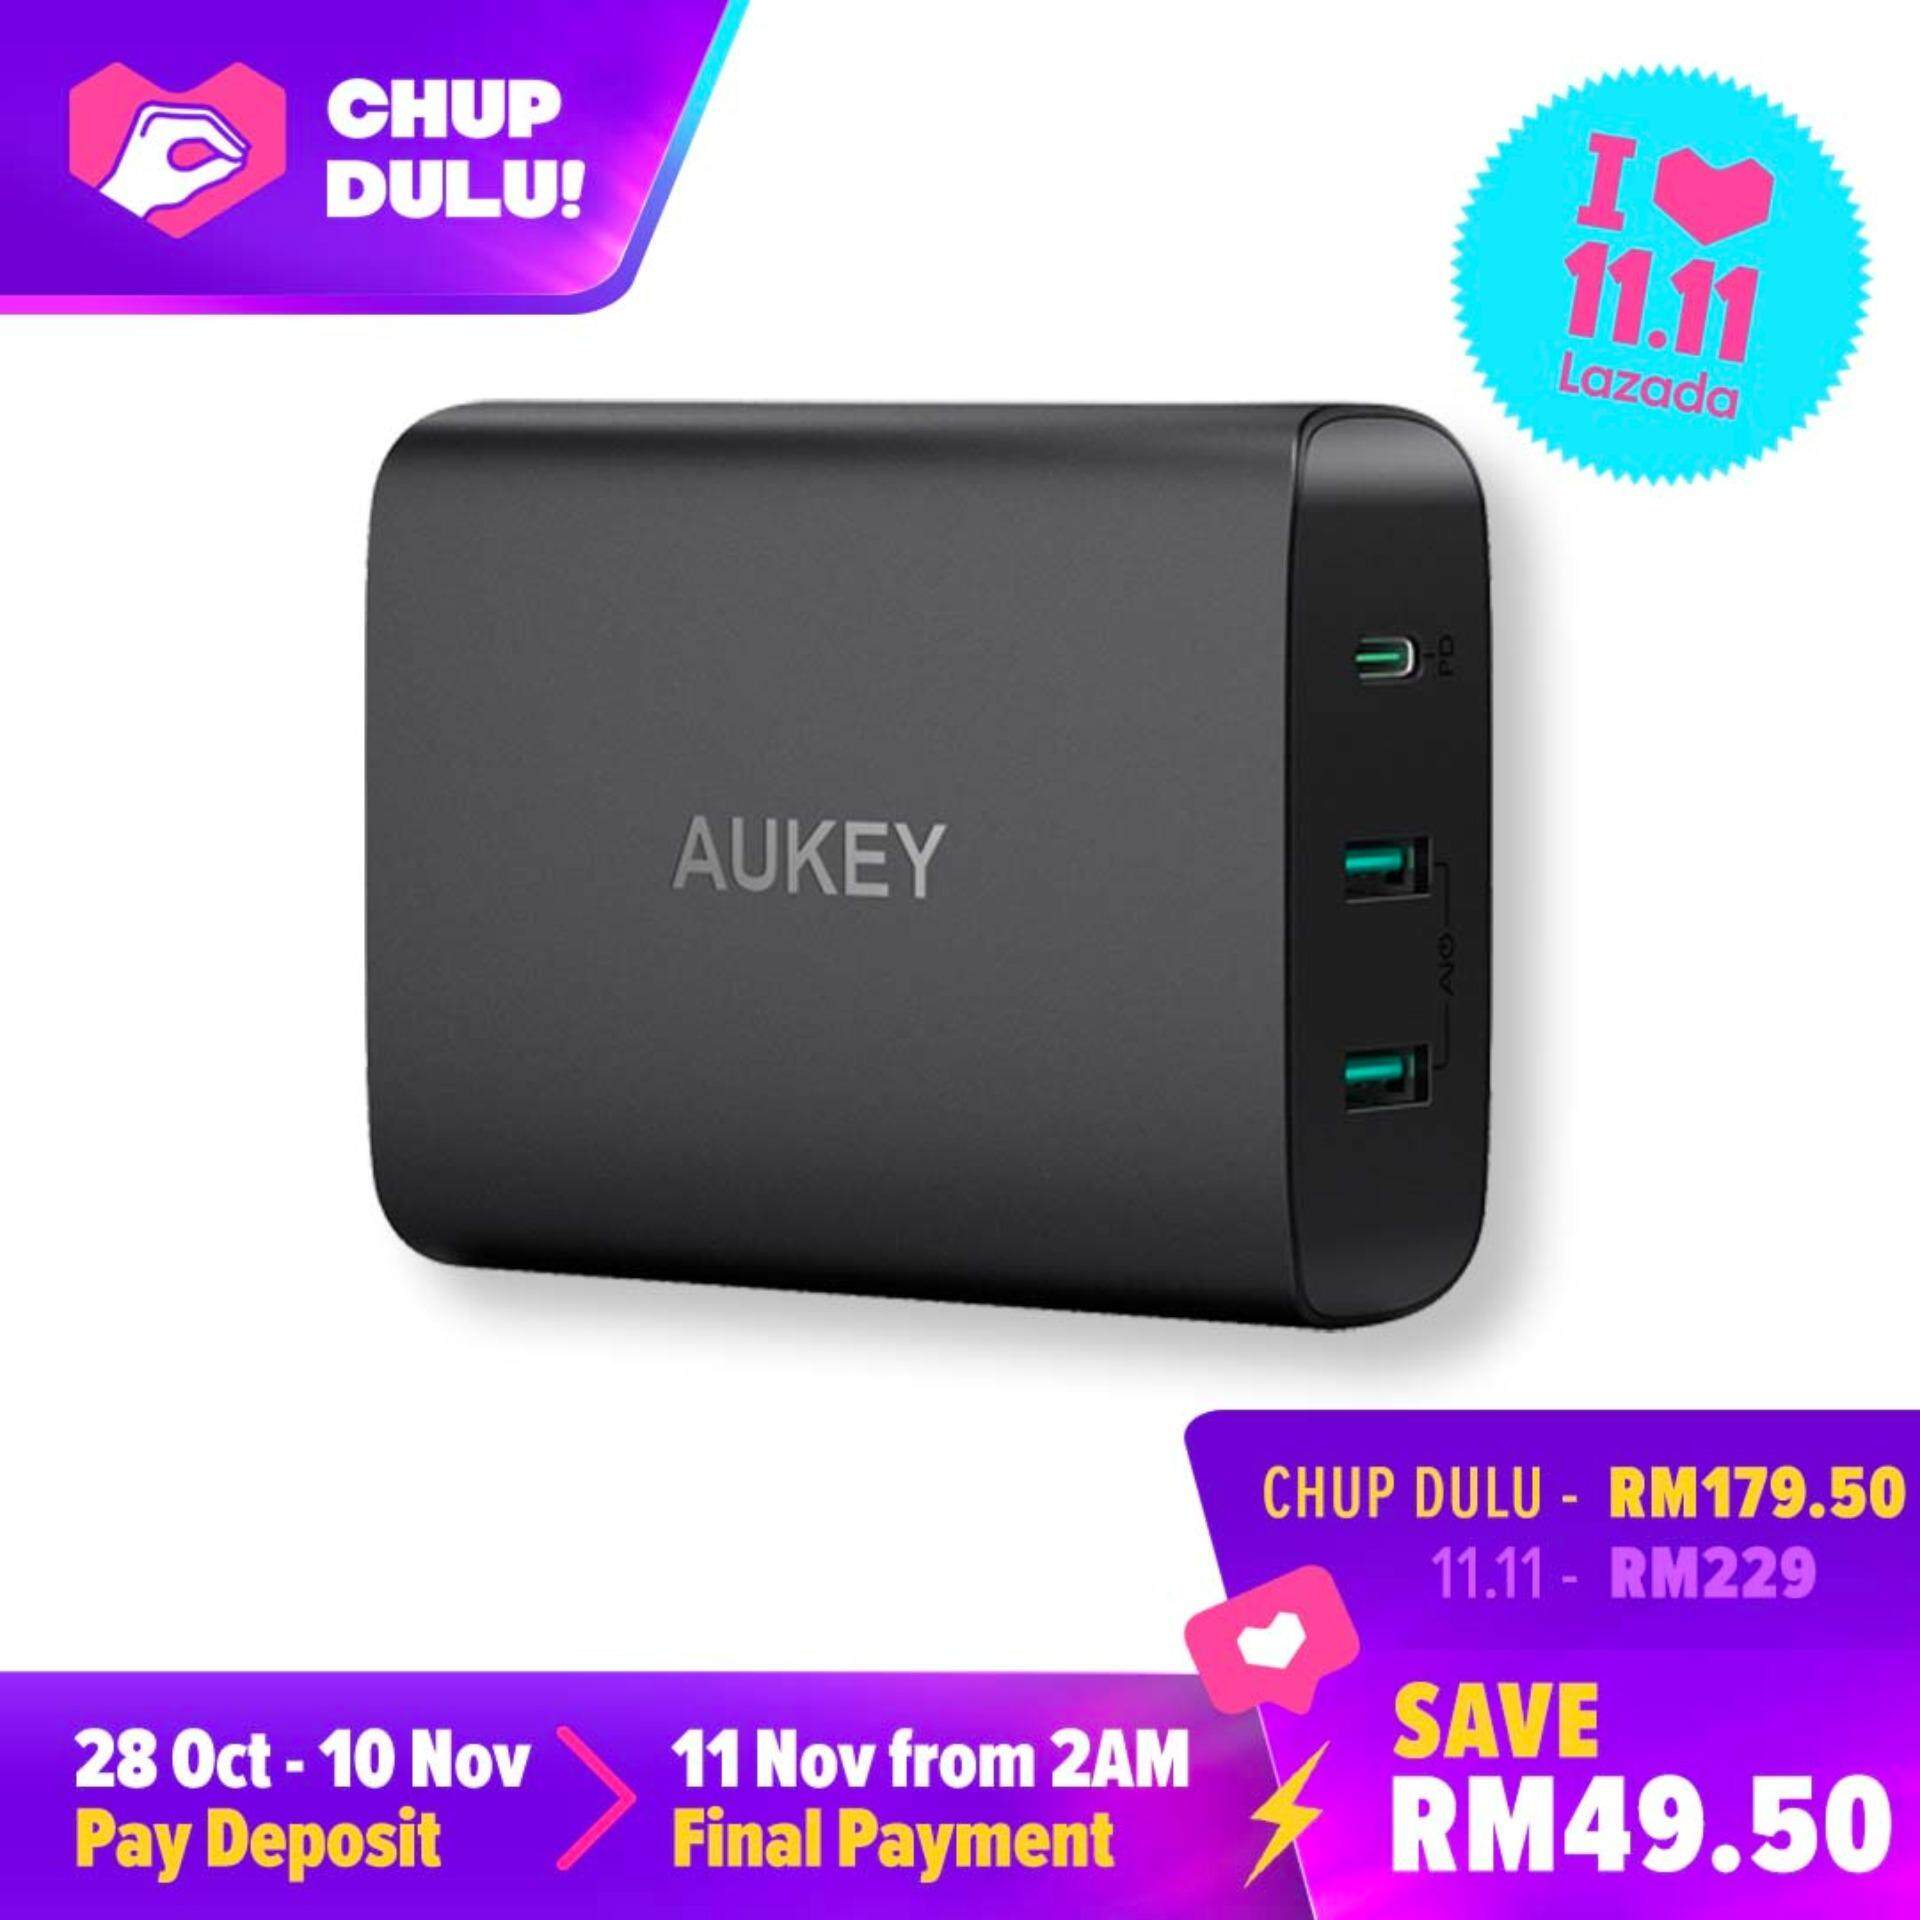 [11.11 CHUP DULU] Aukey PA-Y12 60W USB C Power Delivery 3.0 & Dual Port USB Desktop Charger